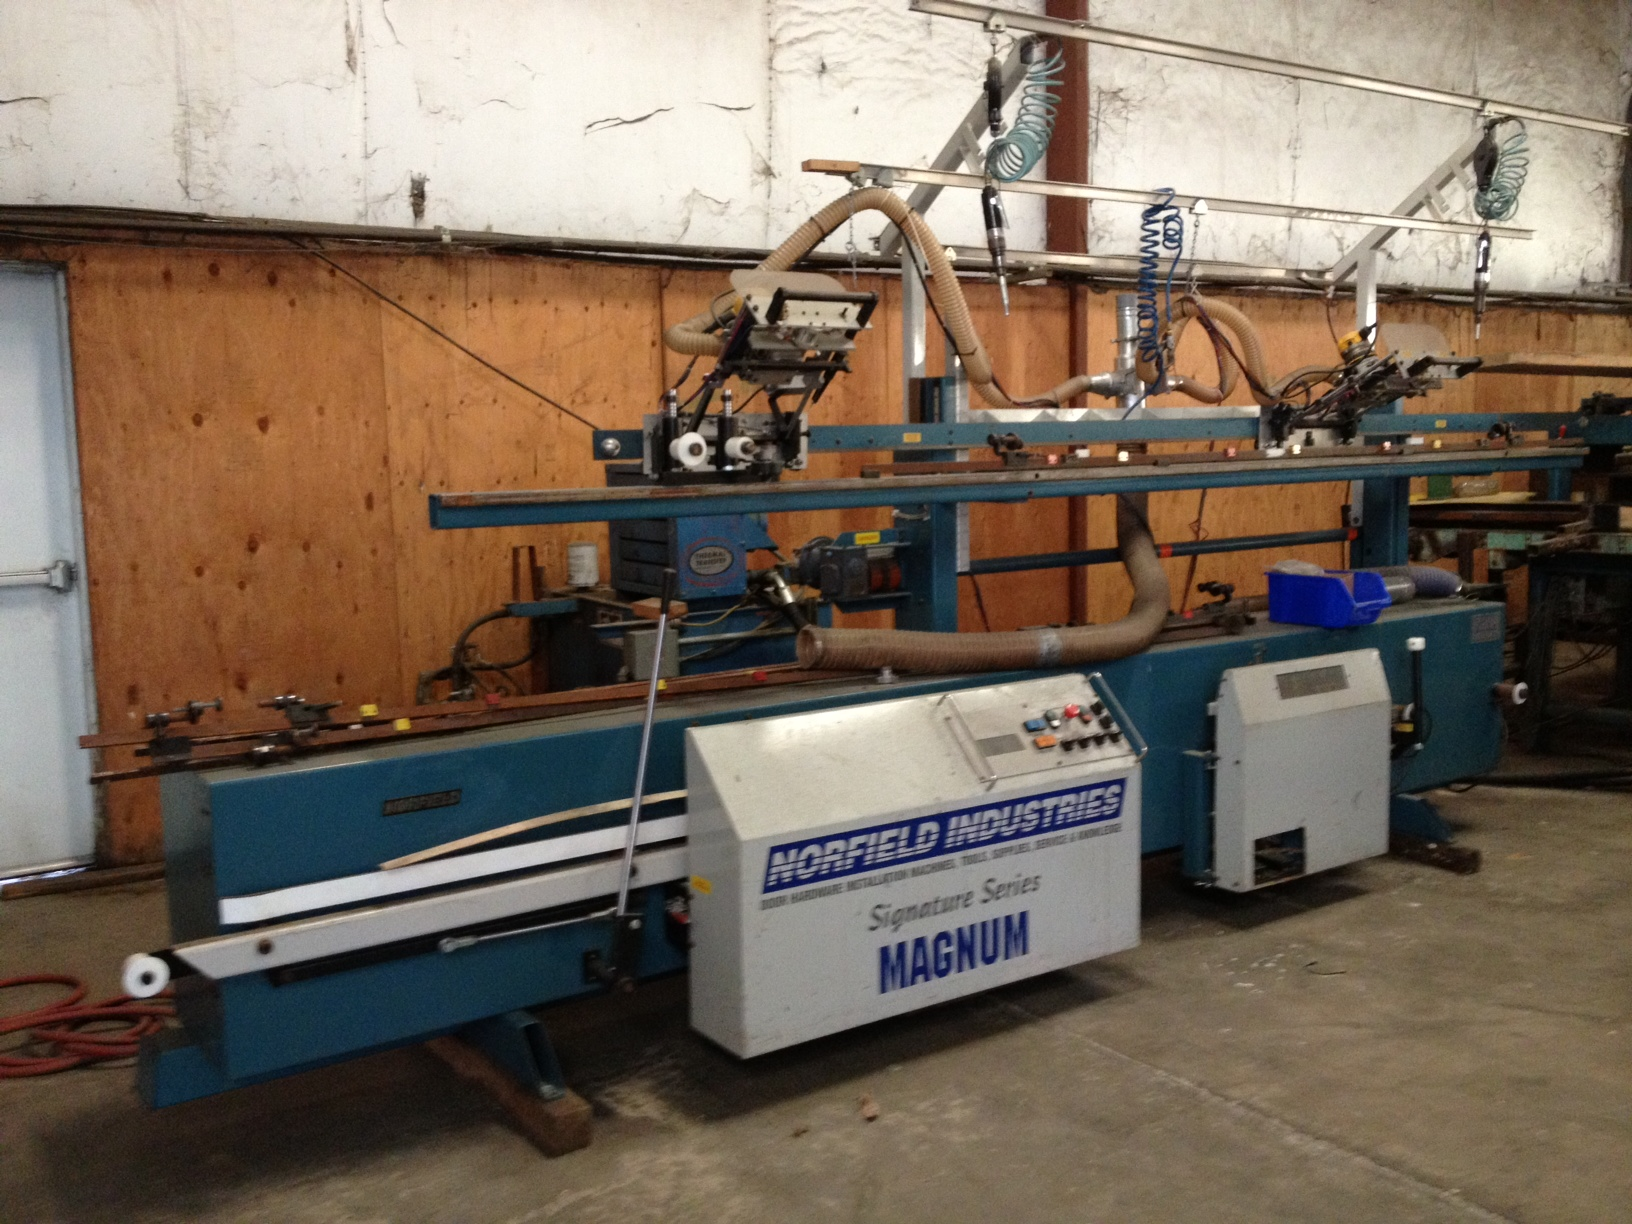 2002 NORFIELD SIGNATURE MAGNUM DOOR MACHINE & 2002 NORFIELD SIGNATURE MAGNUM DOOR MACHINE - Dilco.net